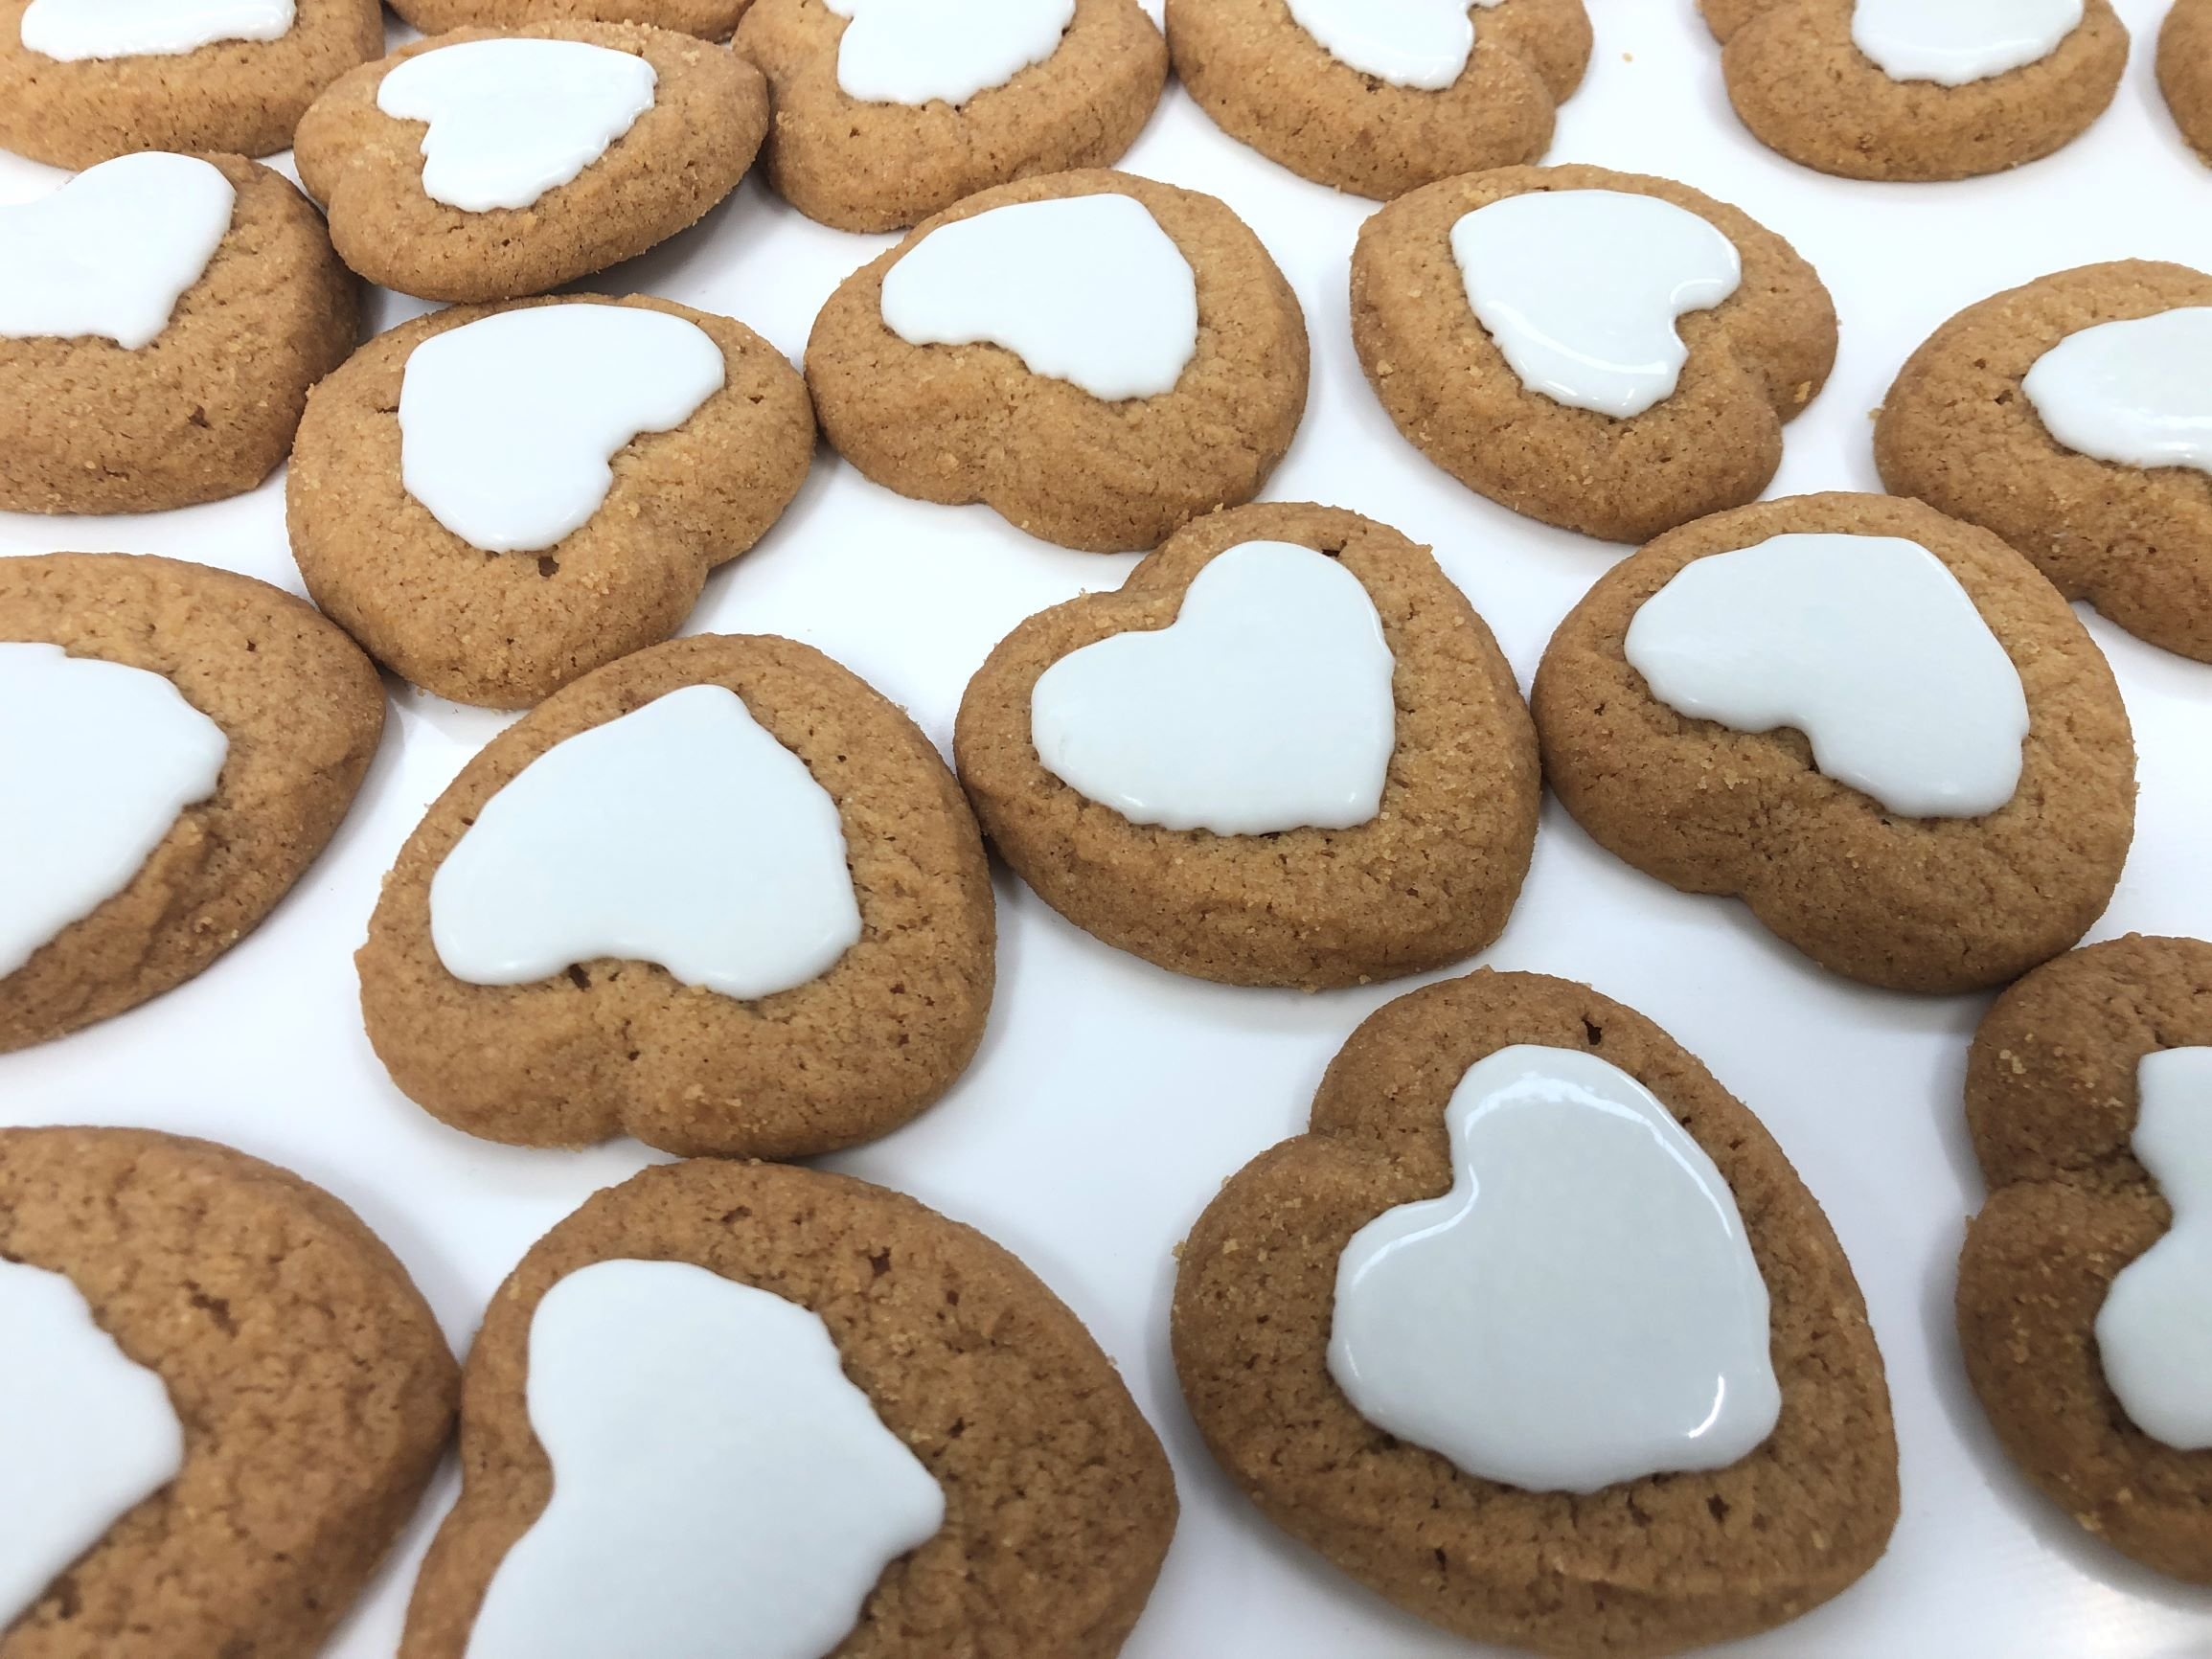 Hearth shaped biscuit with white chocolate heart printed on it by FoodJet chocolate depositor